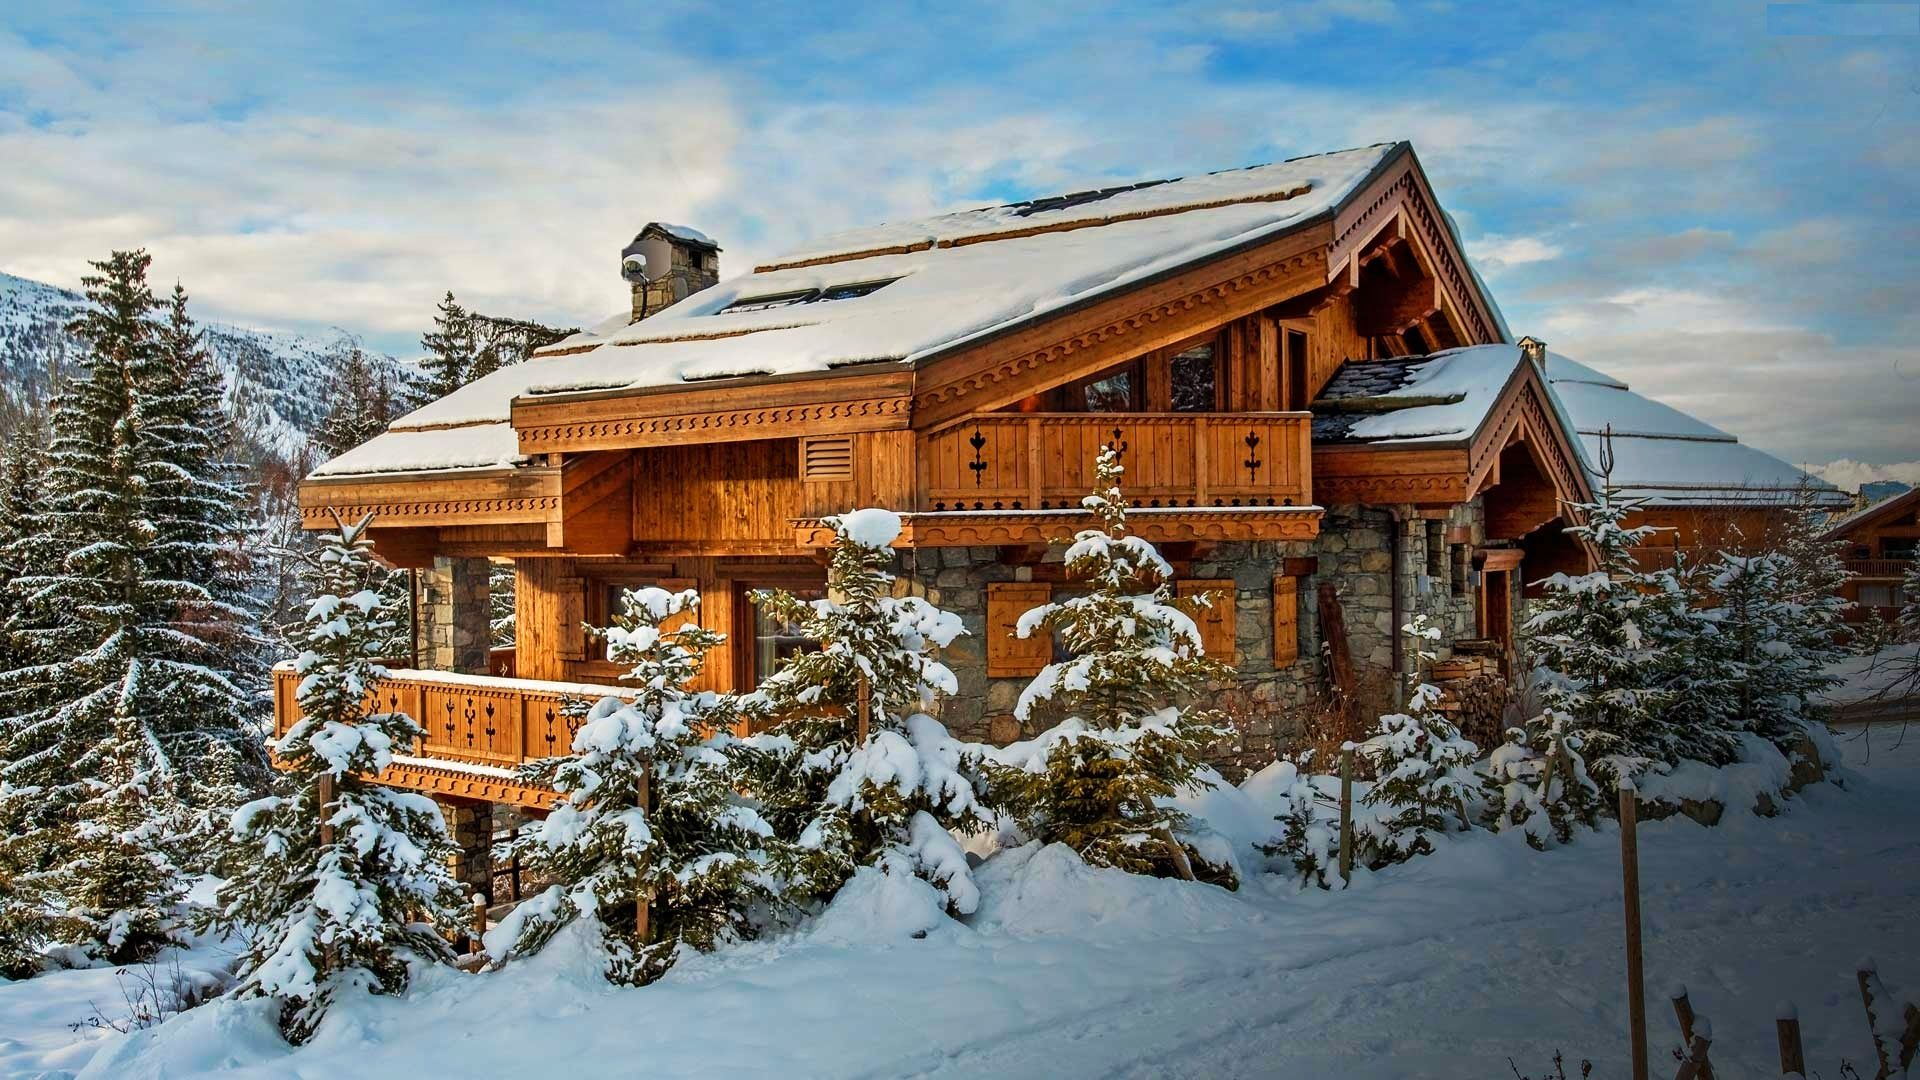 Ski Lodge In Winter Hd Wallpaper Background Image